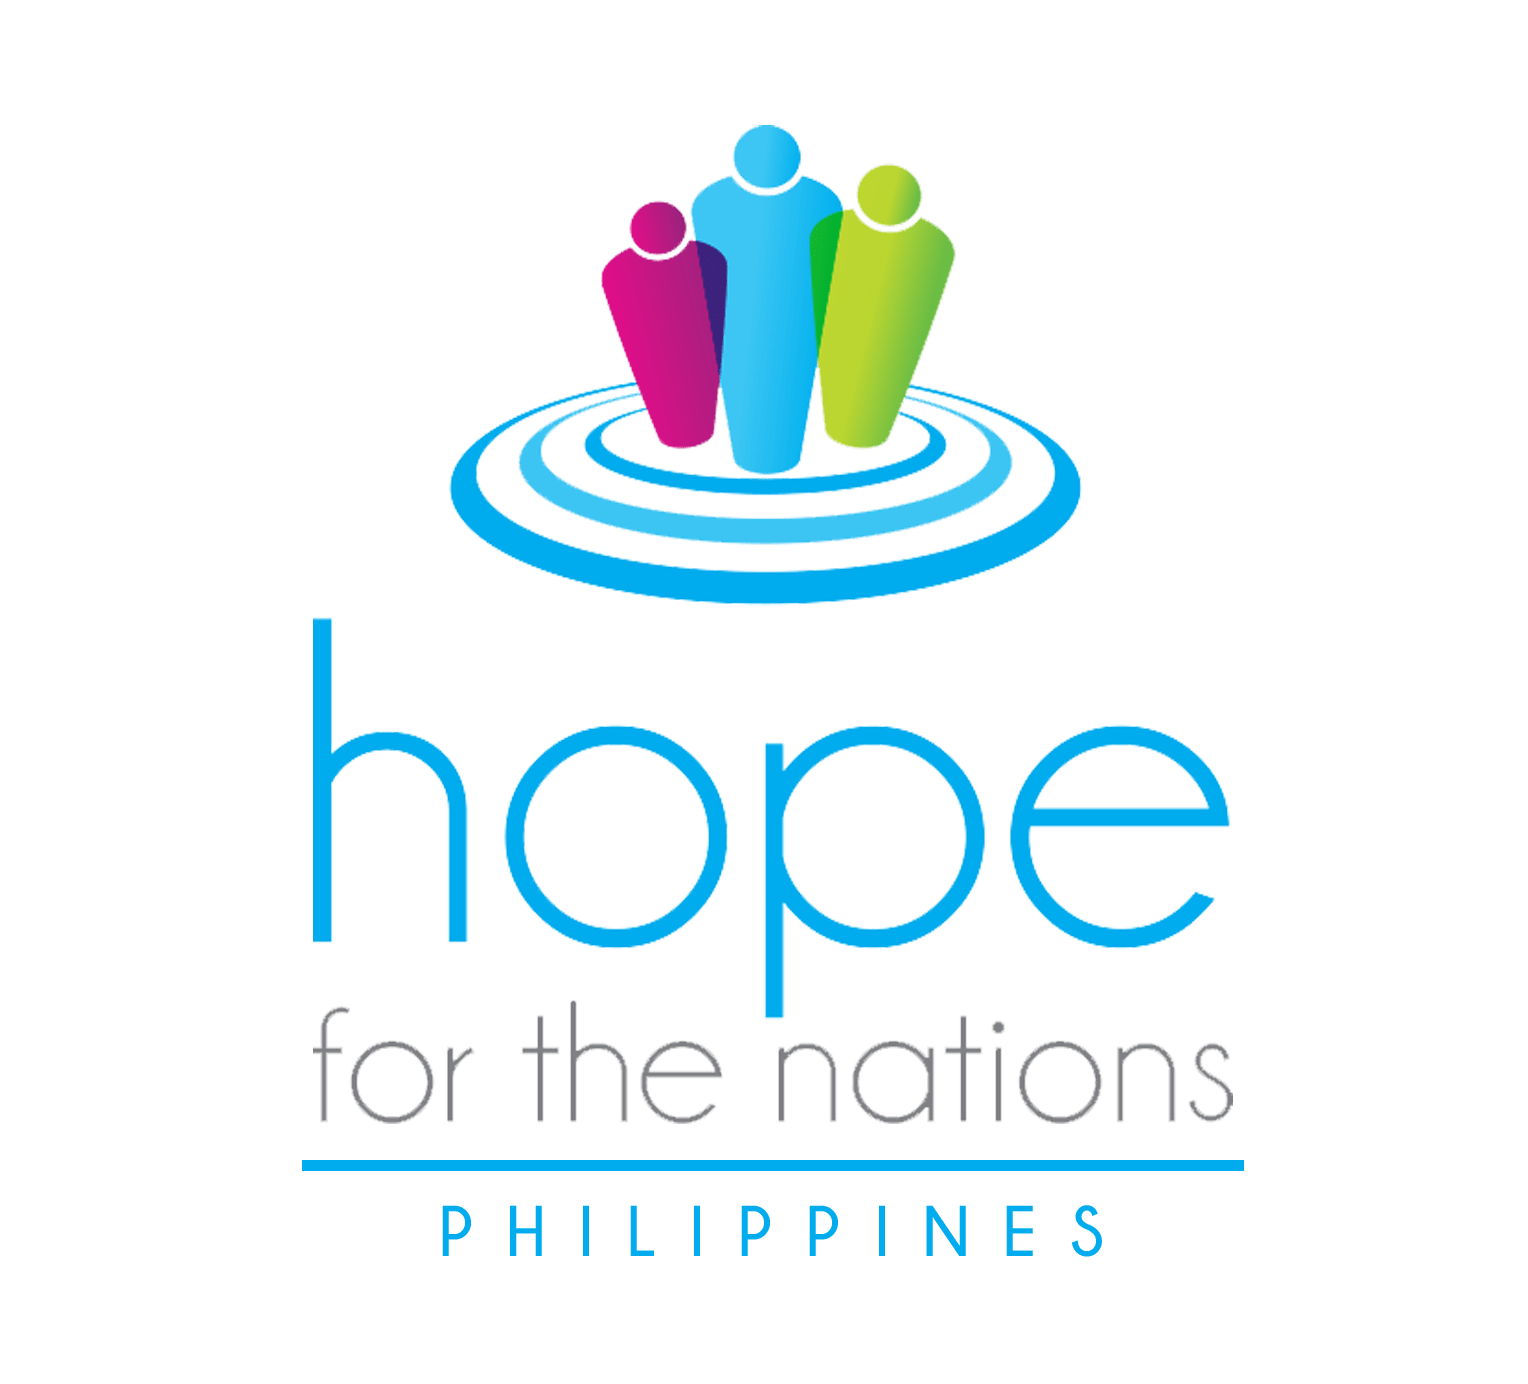 Hope for the Nations Philippines